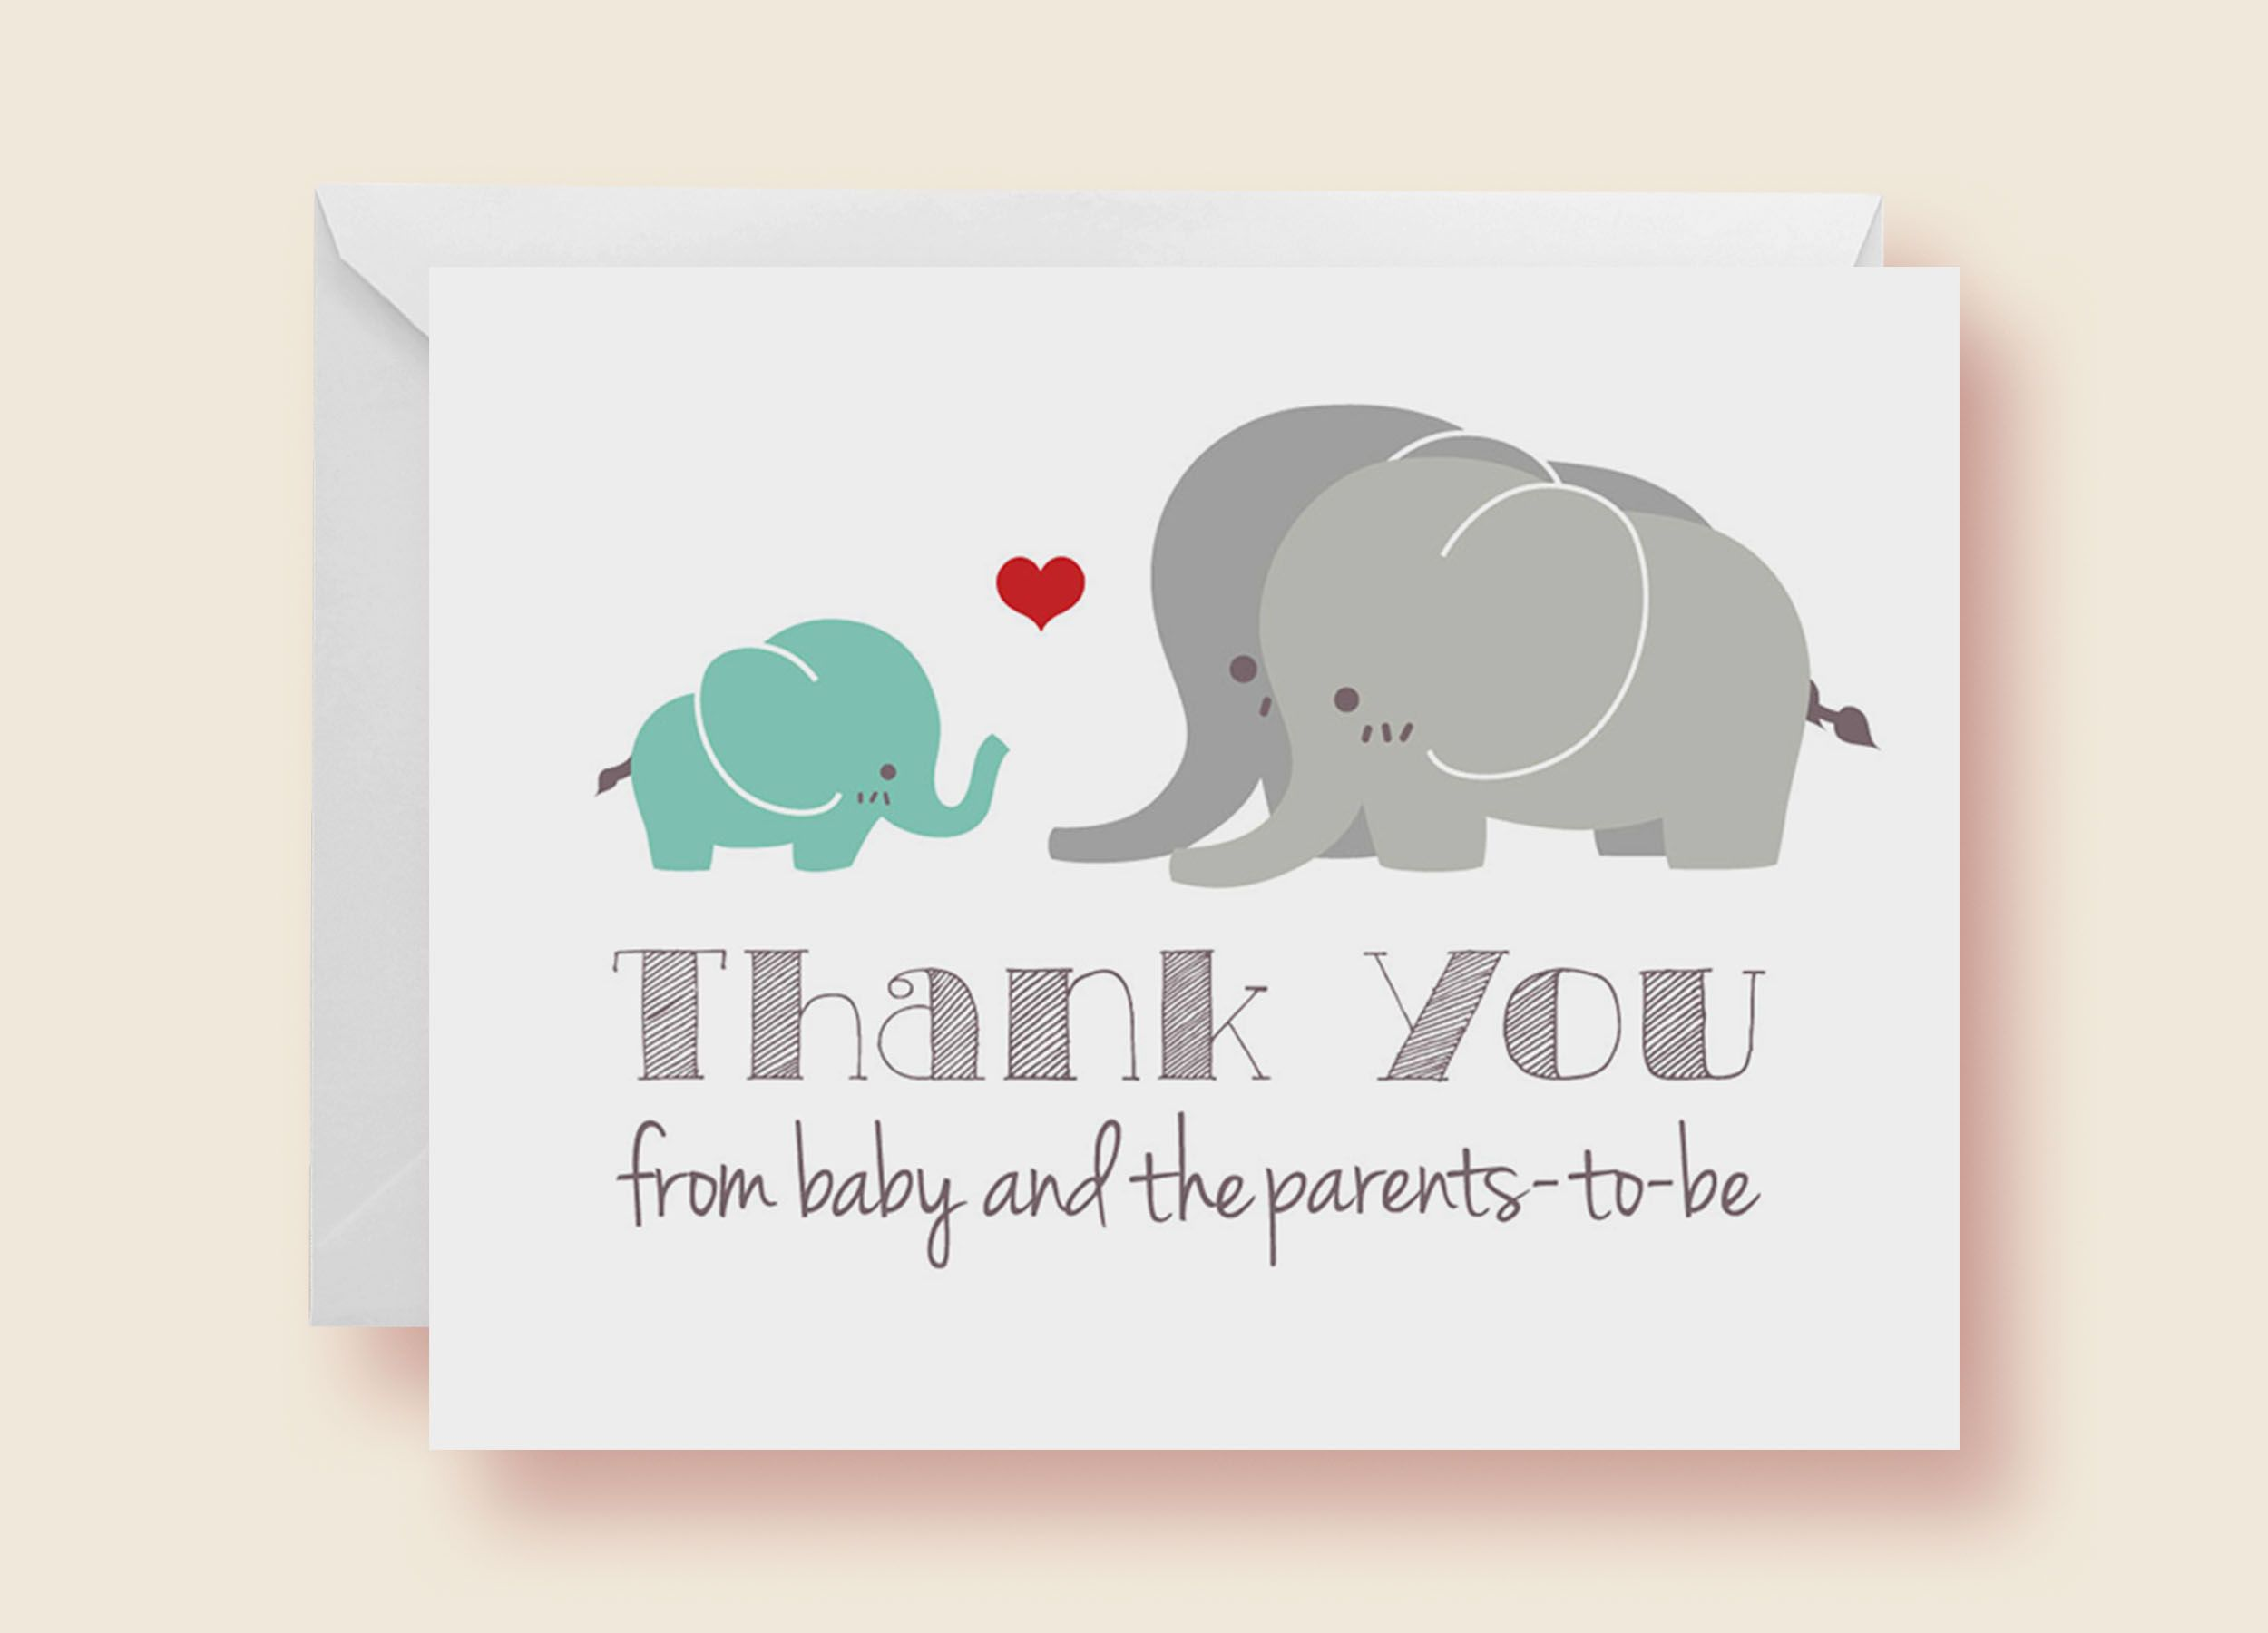 Full Size of Baby Shower:72+ Rousing Baby Shower Thank You Cards Picture Ideas Baby Shower Hashtag Ideas With Baby Shower Pictures Plus Martha Stewart Baby Shower Together With Baby Shower Presents As Well As Baby Shower Cake Ideas And Baby Shower Party